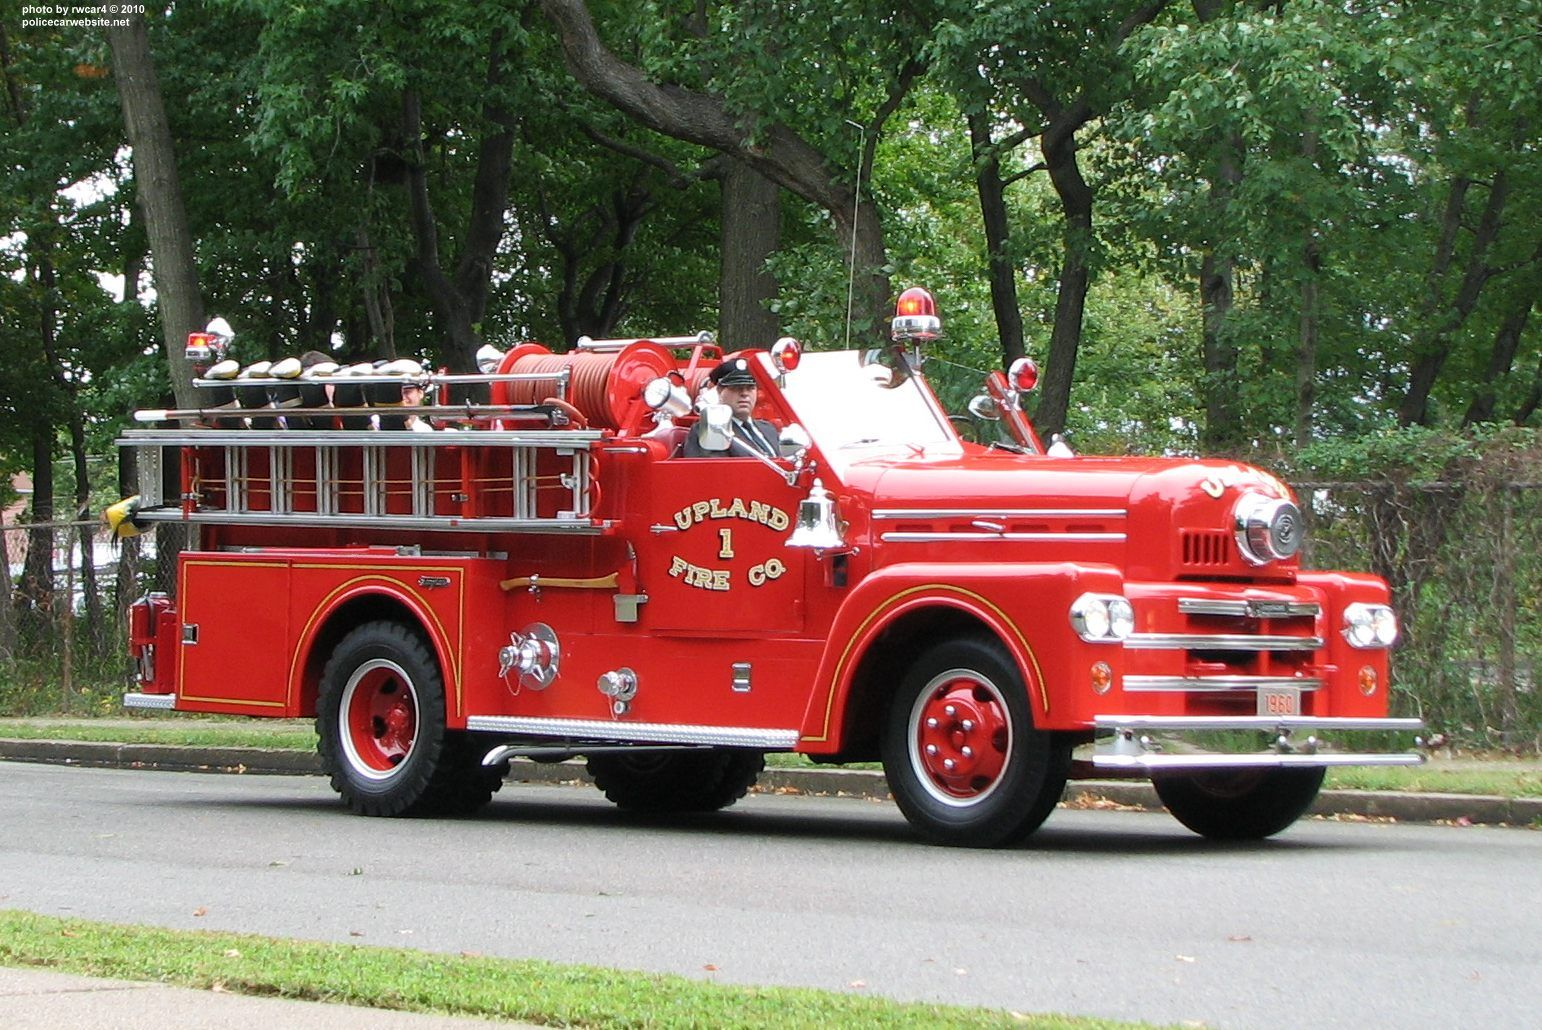 Fire Truck Photos And Picture By Rwcar4 Fire Trucks Trucks Vintage Trucks